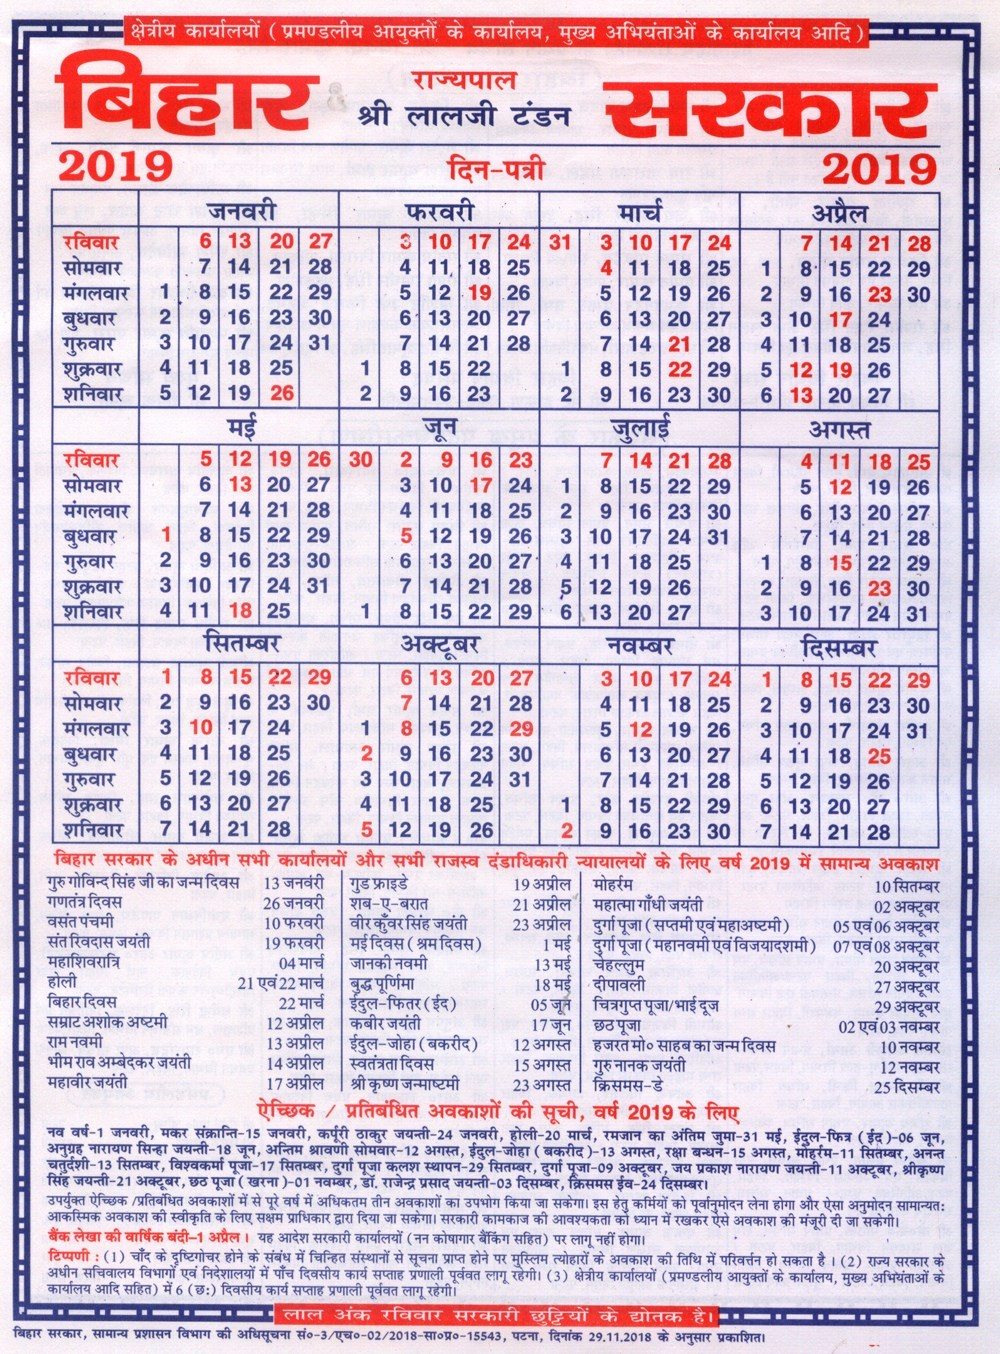 Bihar_Government_Calendar2019 | Bihar School with regard to Bihar Government Calendar 2020